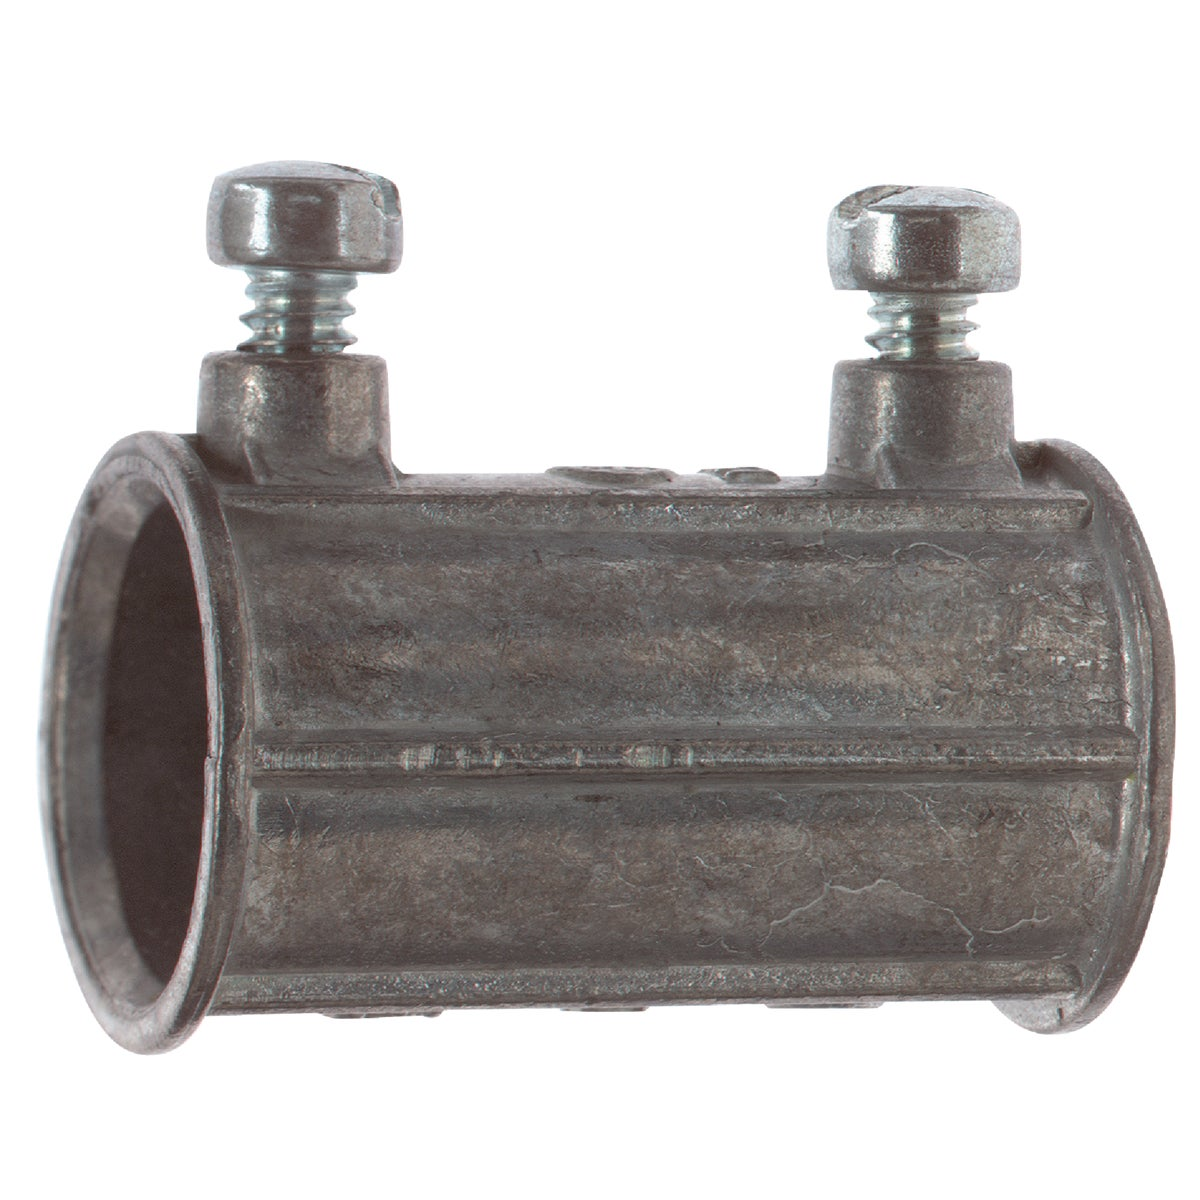 "1/2"" EMT COUPLING - TK221SC1 by Thomas & Betts"